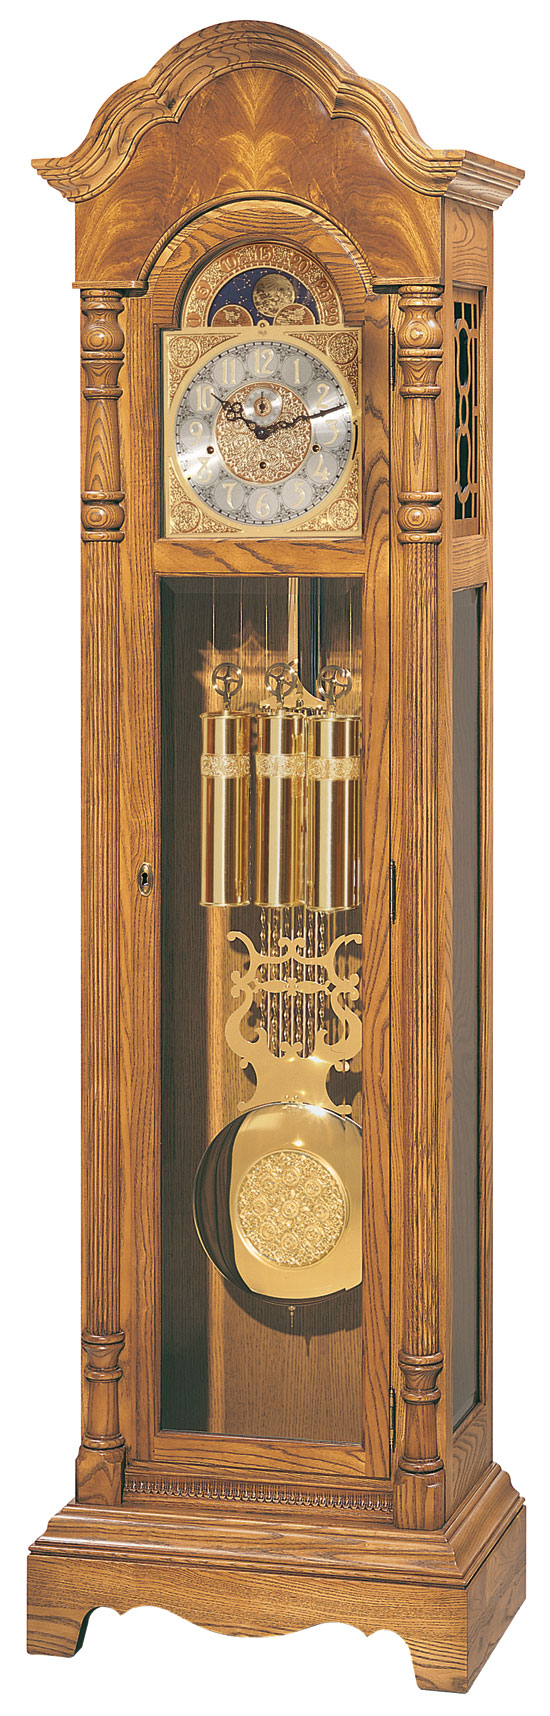 Bulova grandfather clock this is our clock our time together bulova grandfather clock this is our clock amipublicfo Images